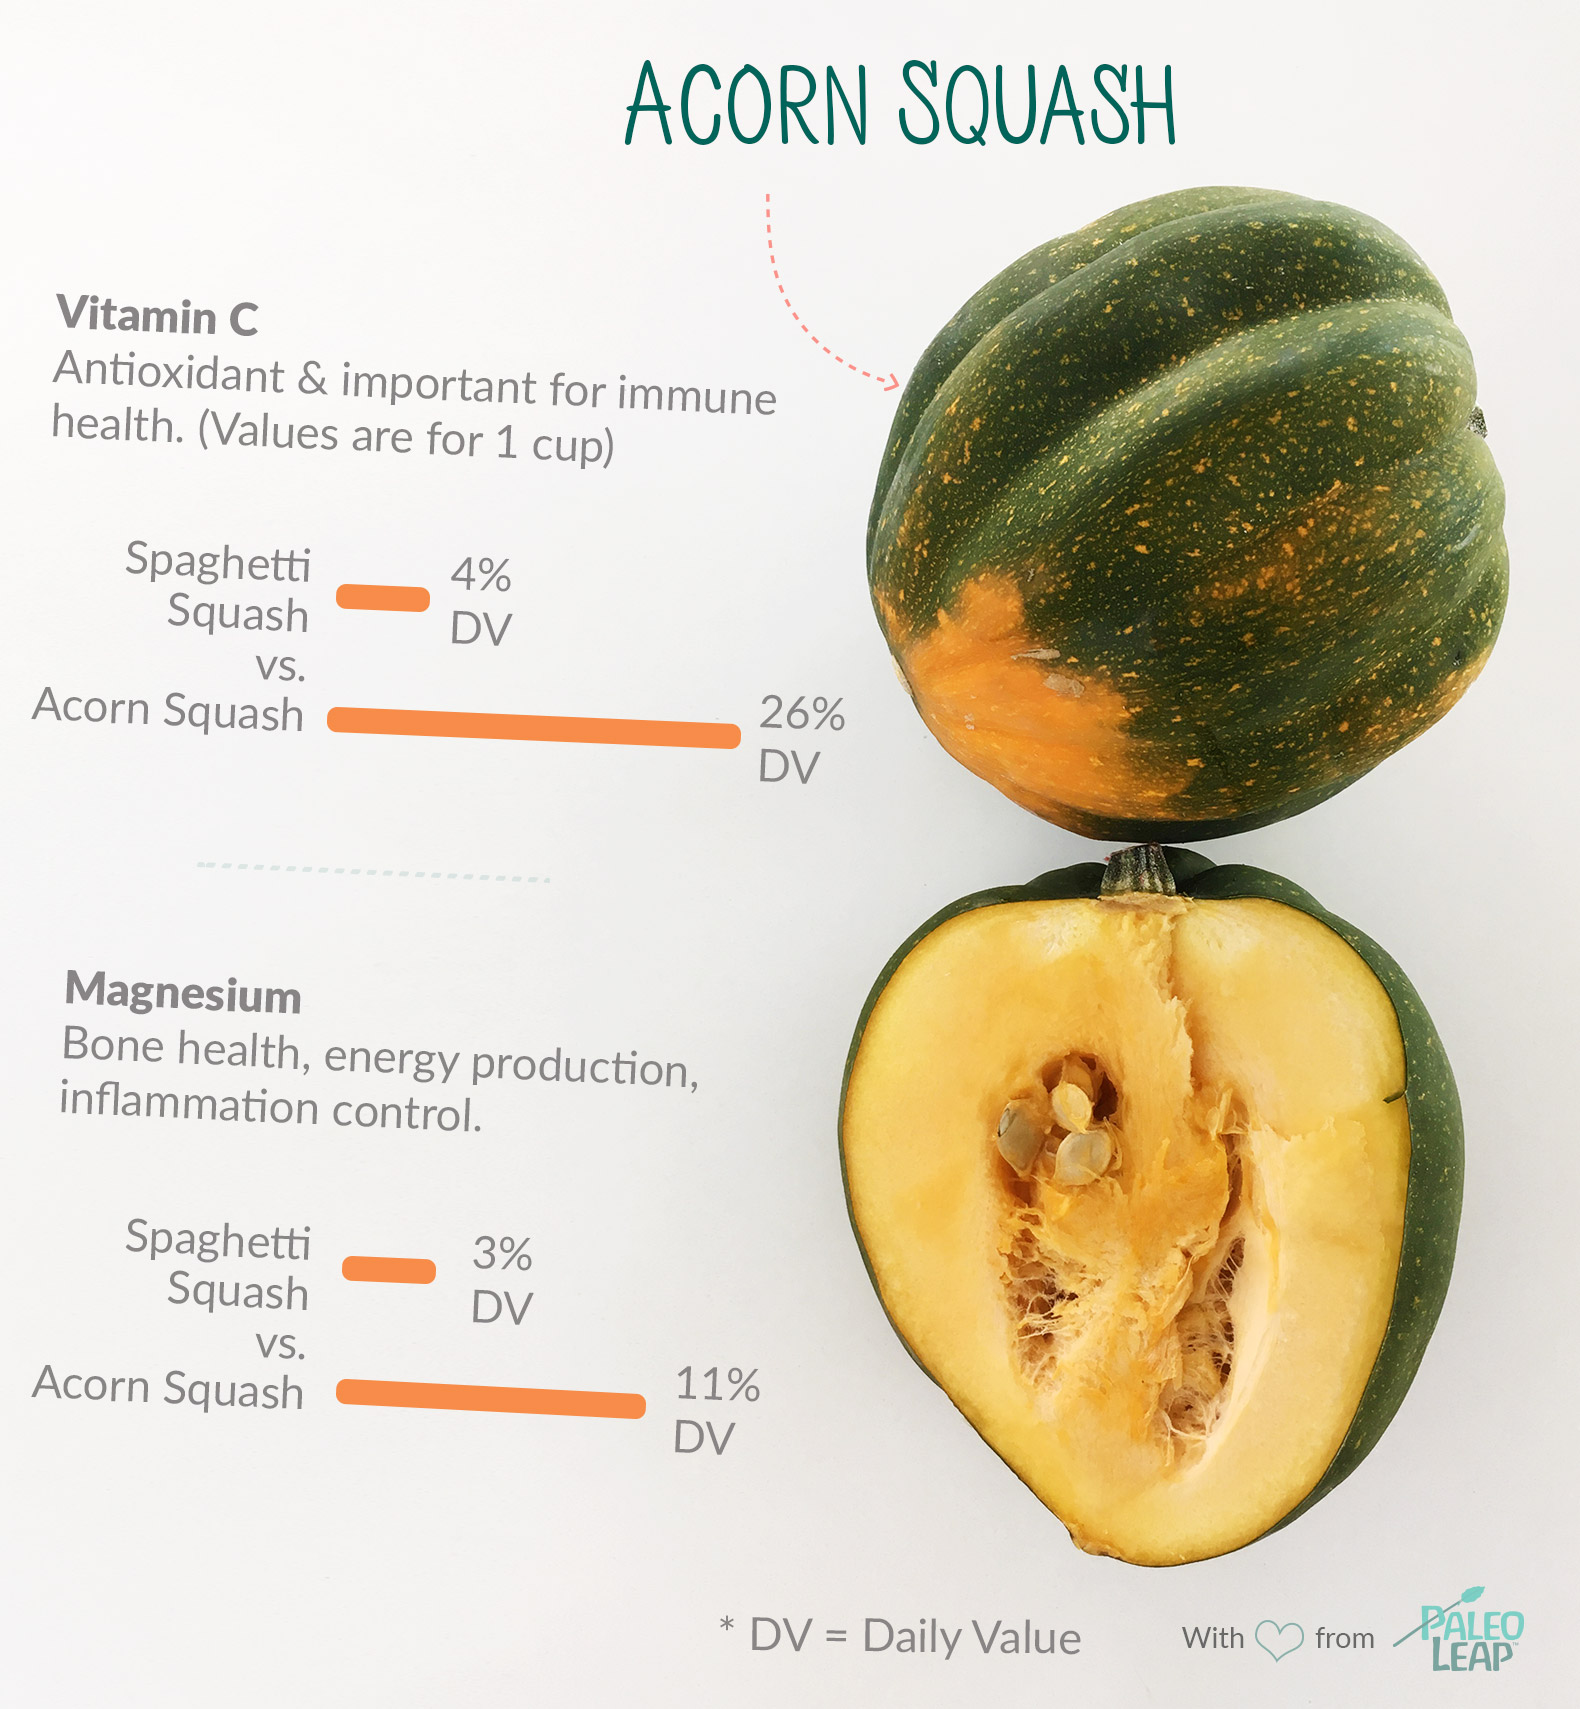 Acorn Squash highlights